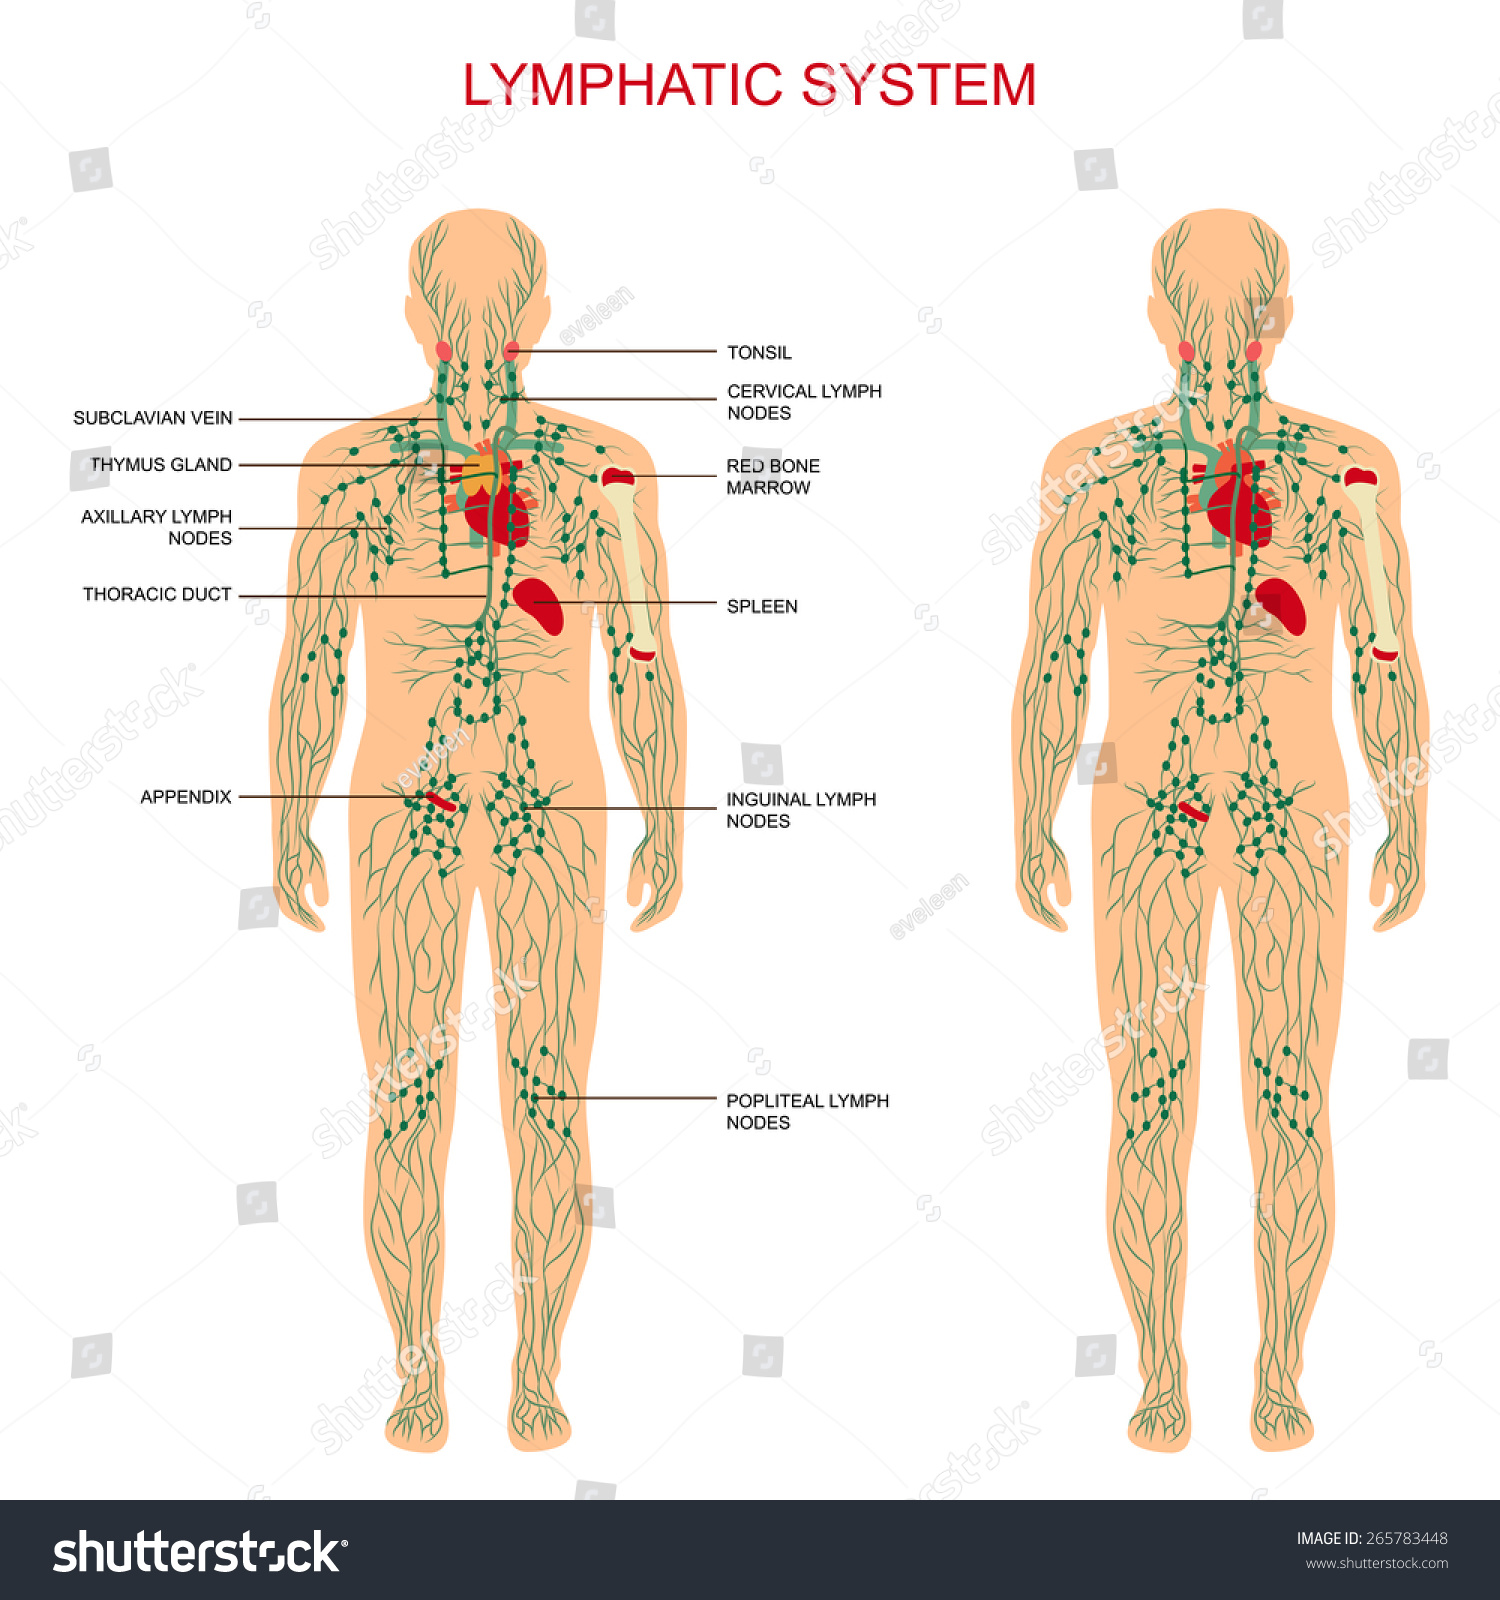 Human Anatomy Lymphatic System Medical Illustration Stock Vector